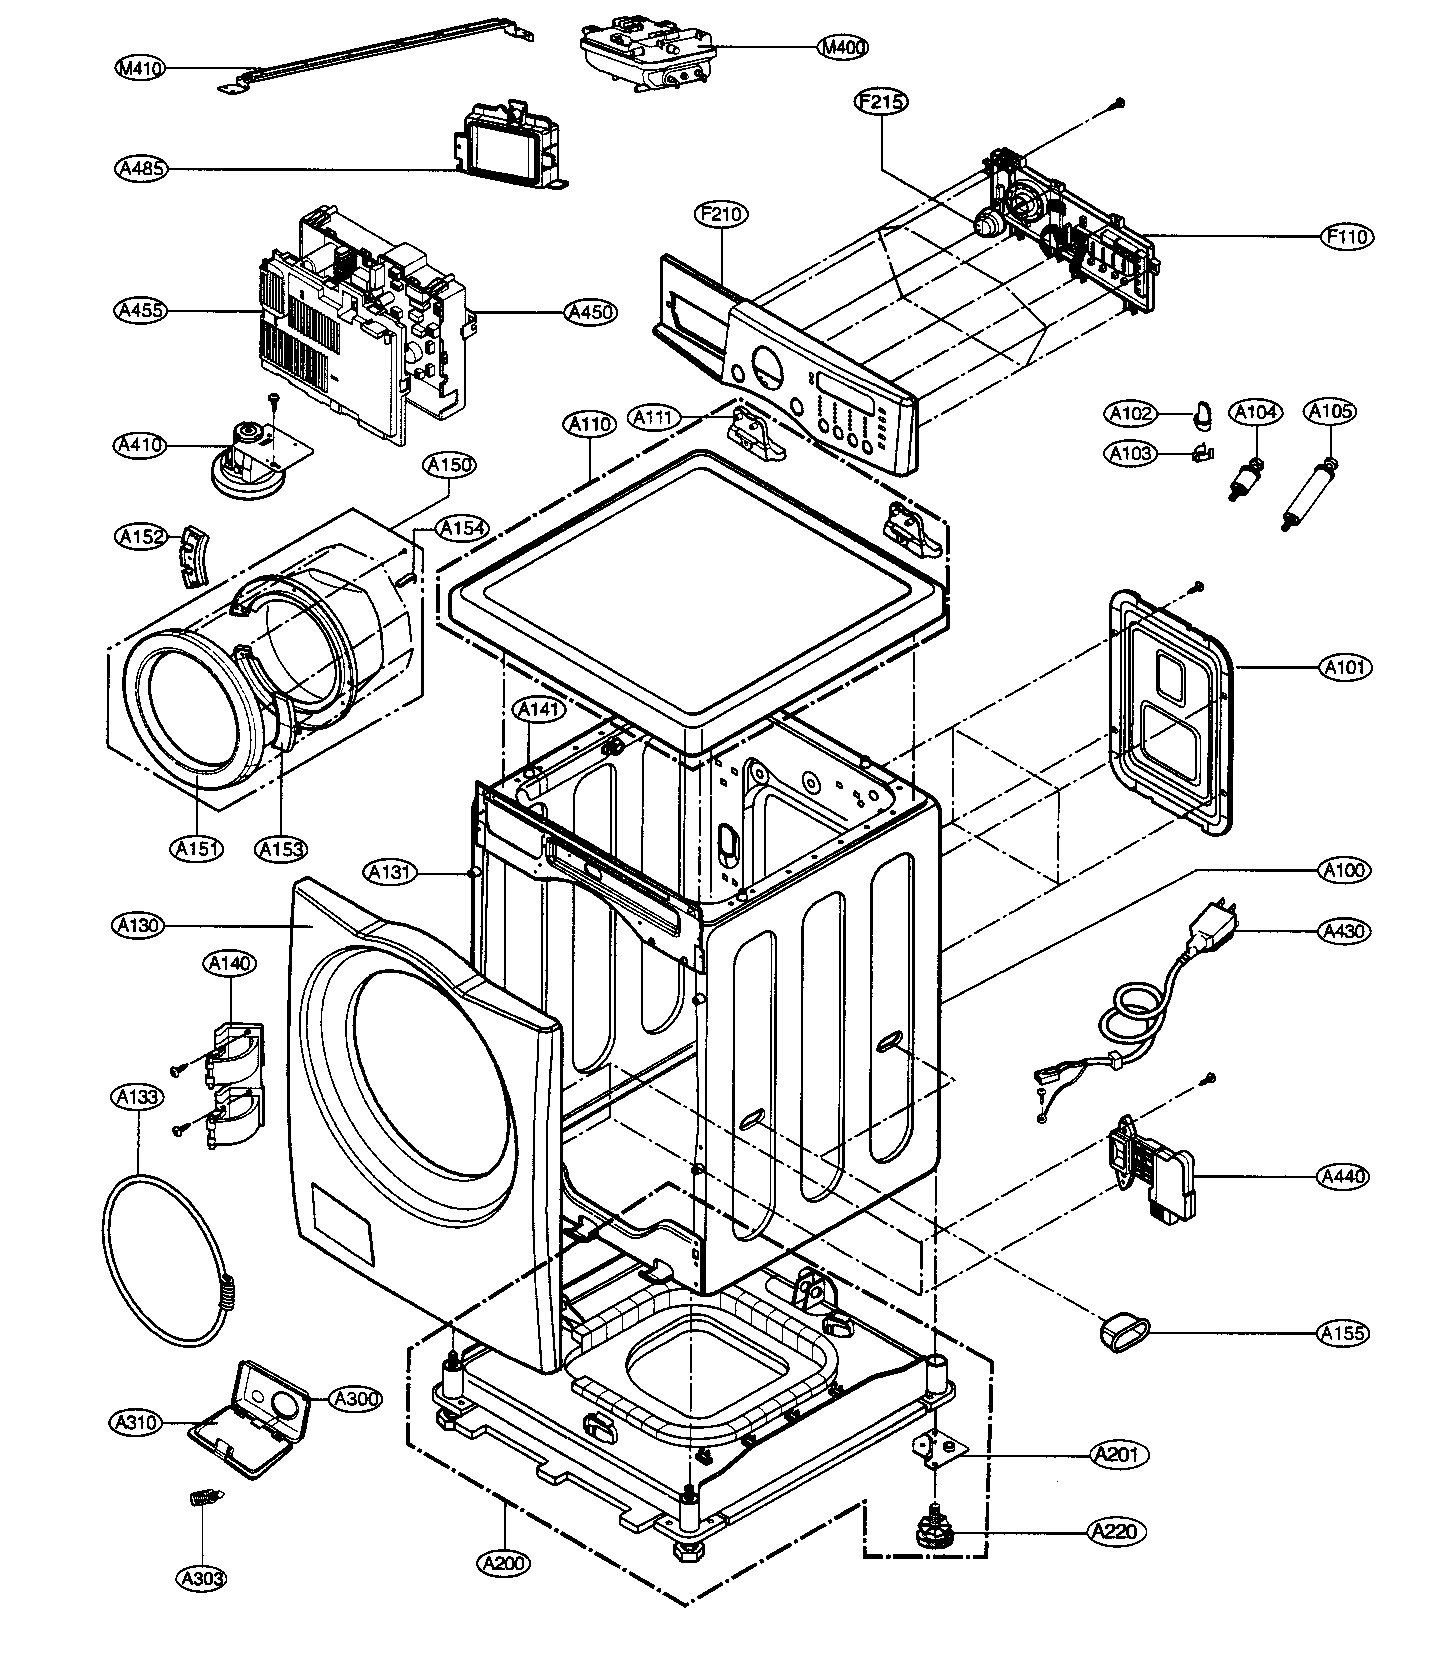 hight resolution of lg dryer wiring diagram wiring diagram lg dryer troubleshooting lg dryer schematic wiring diagram listlg dryer